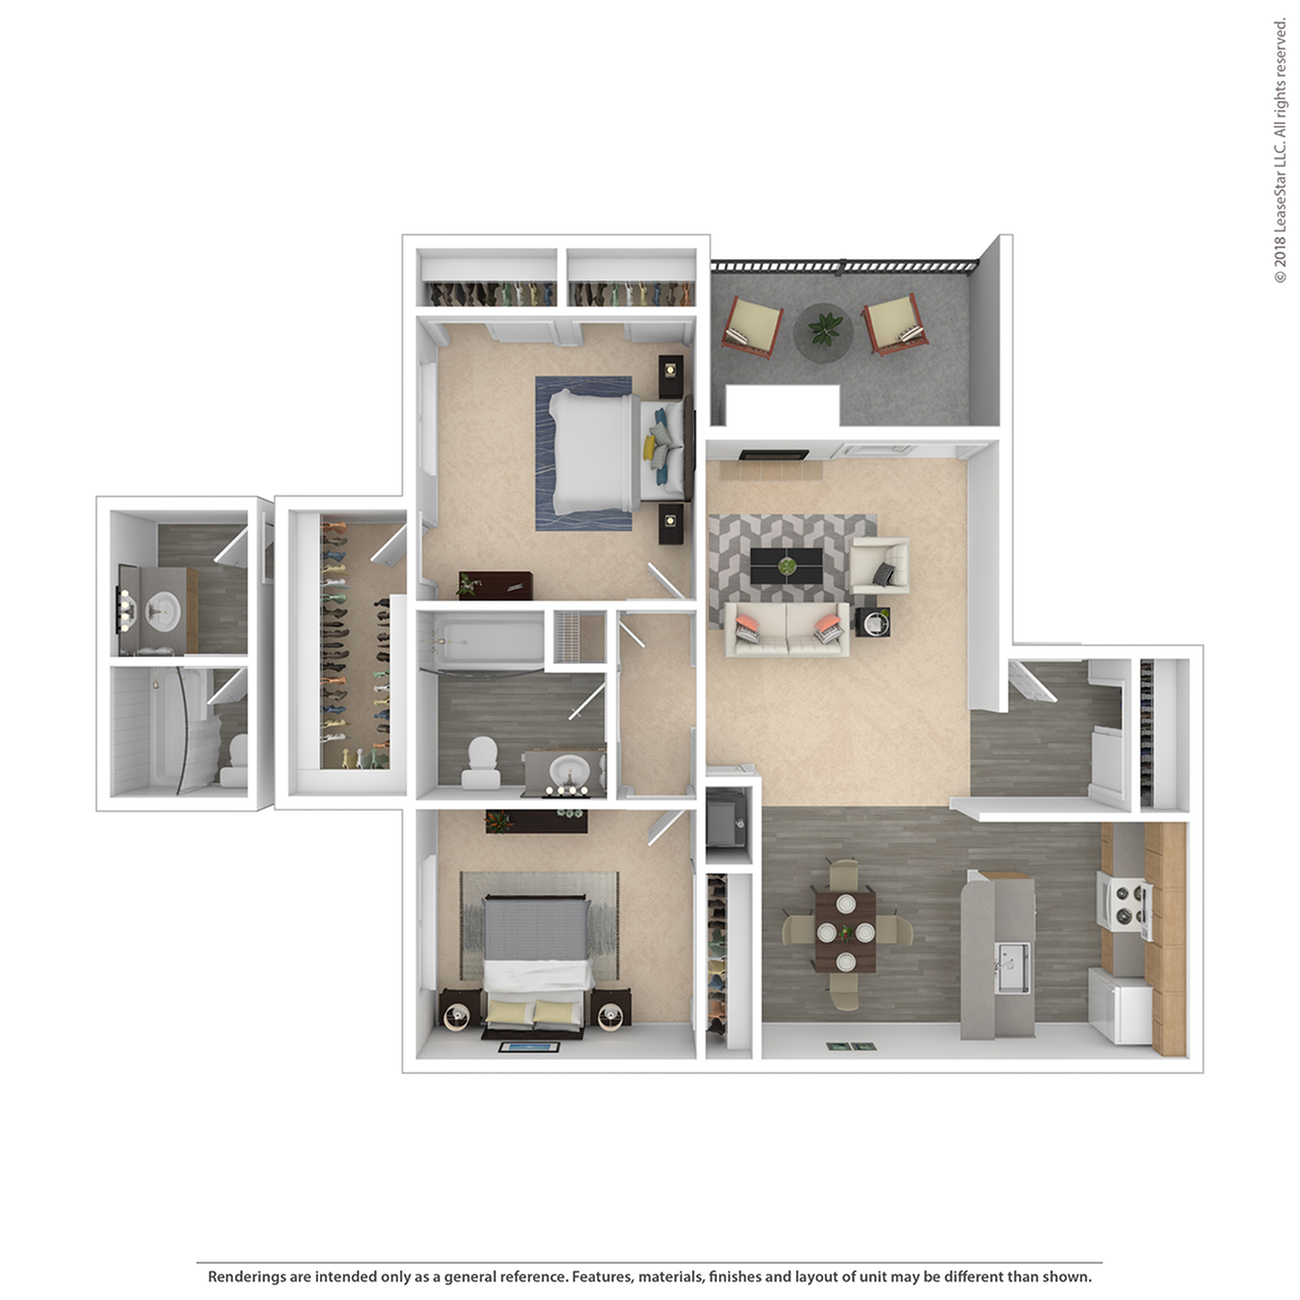 2 Bedroom Floor Plan | Federal Heights Co Apartments | The Lodge on 84th